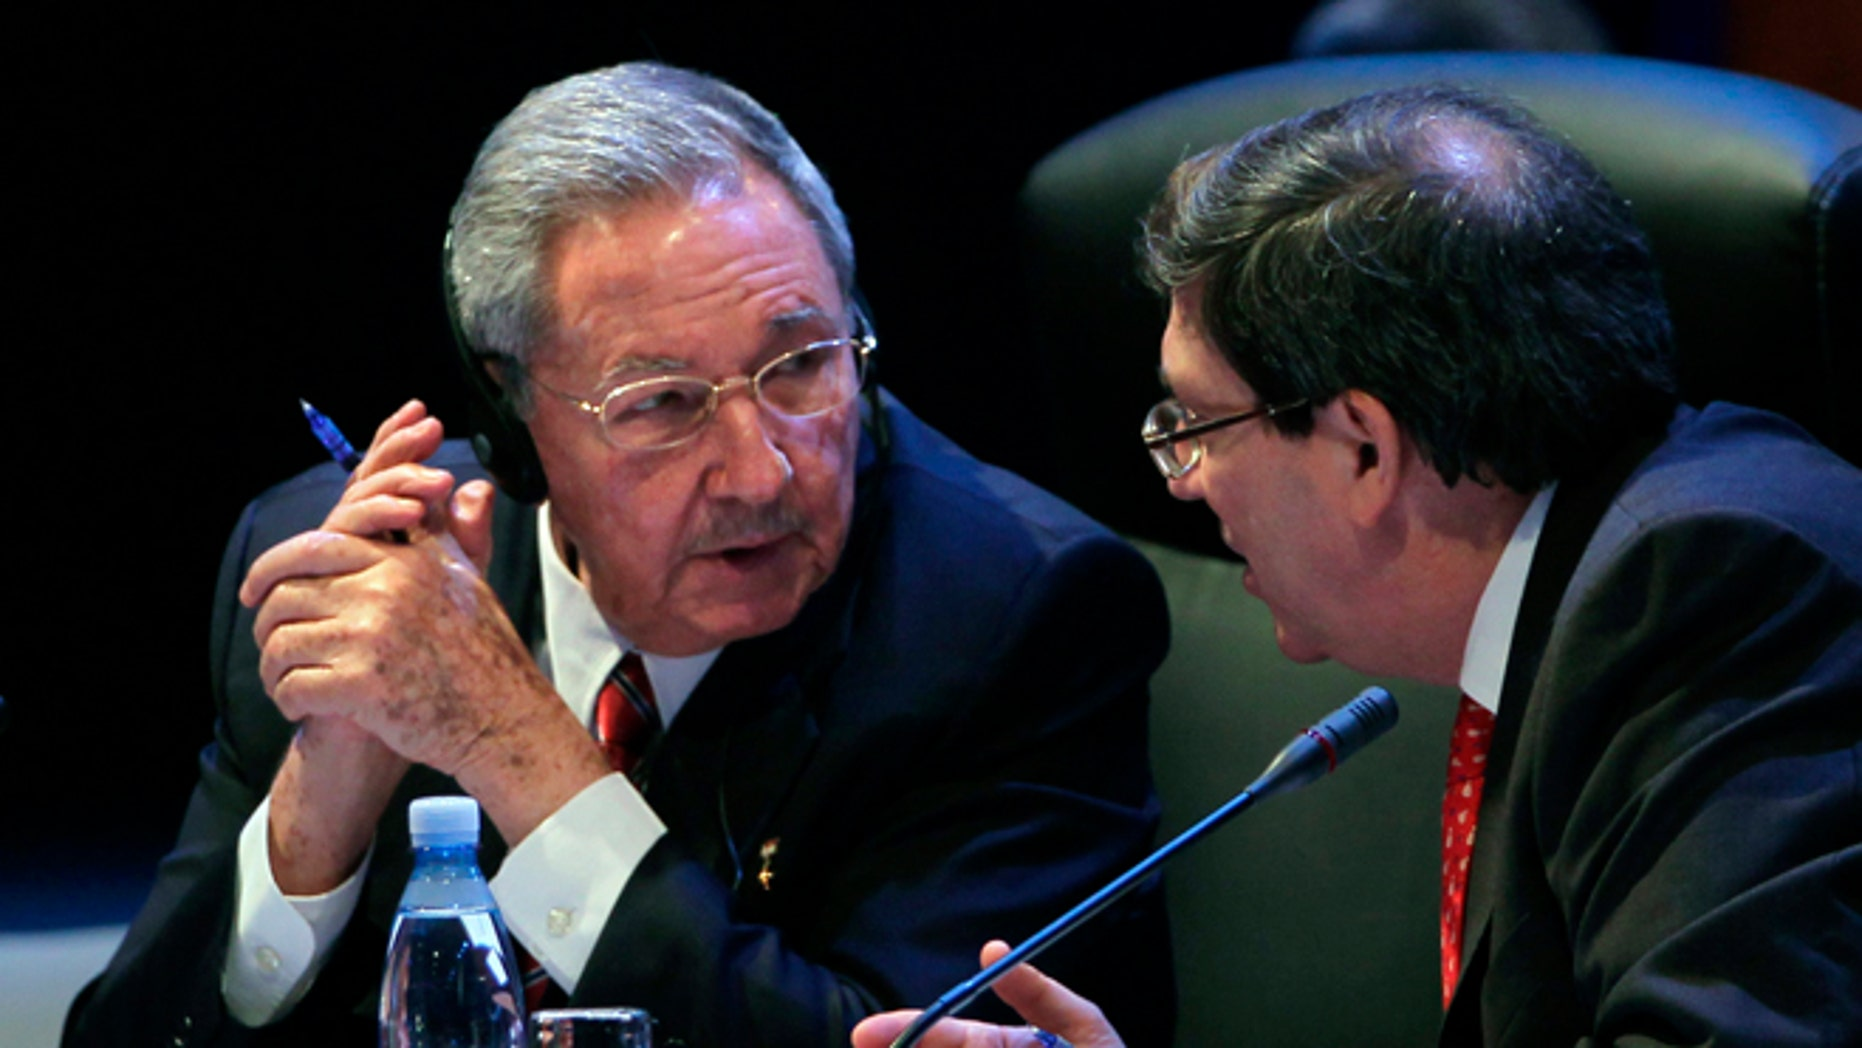 Cuba's President Raul Castro speaks to his Foreign Minister Bruno Rodriguez during a session of the CELAC Summit in Havana, Cuba, Tuesday, Jan. 28, 2014. Leaders from Latin America and the Caribbean are in Cuba to talk about poverty, inequality and hunger at the summit of the Community of Latin American and Caribbean States, or CELAC. (AP Photo/Cubadebate, Ismael Francisco)